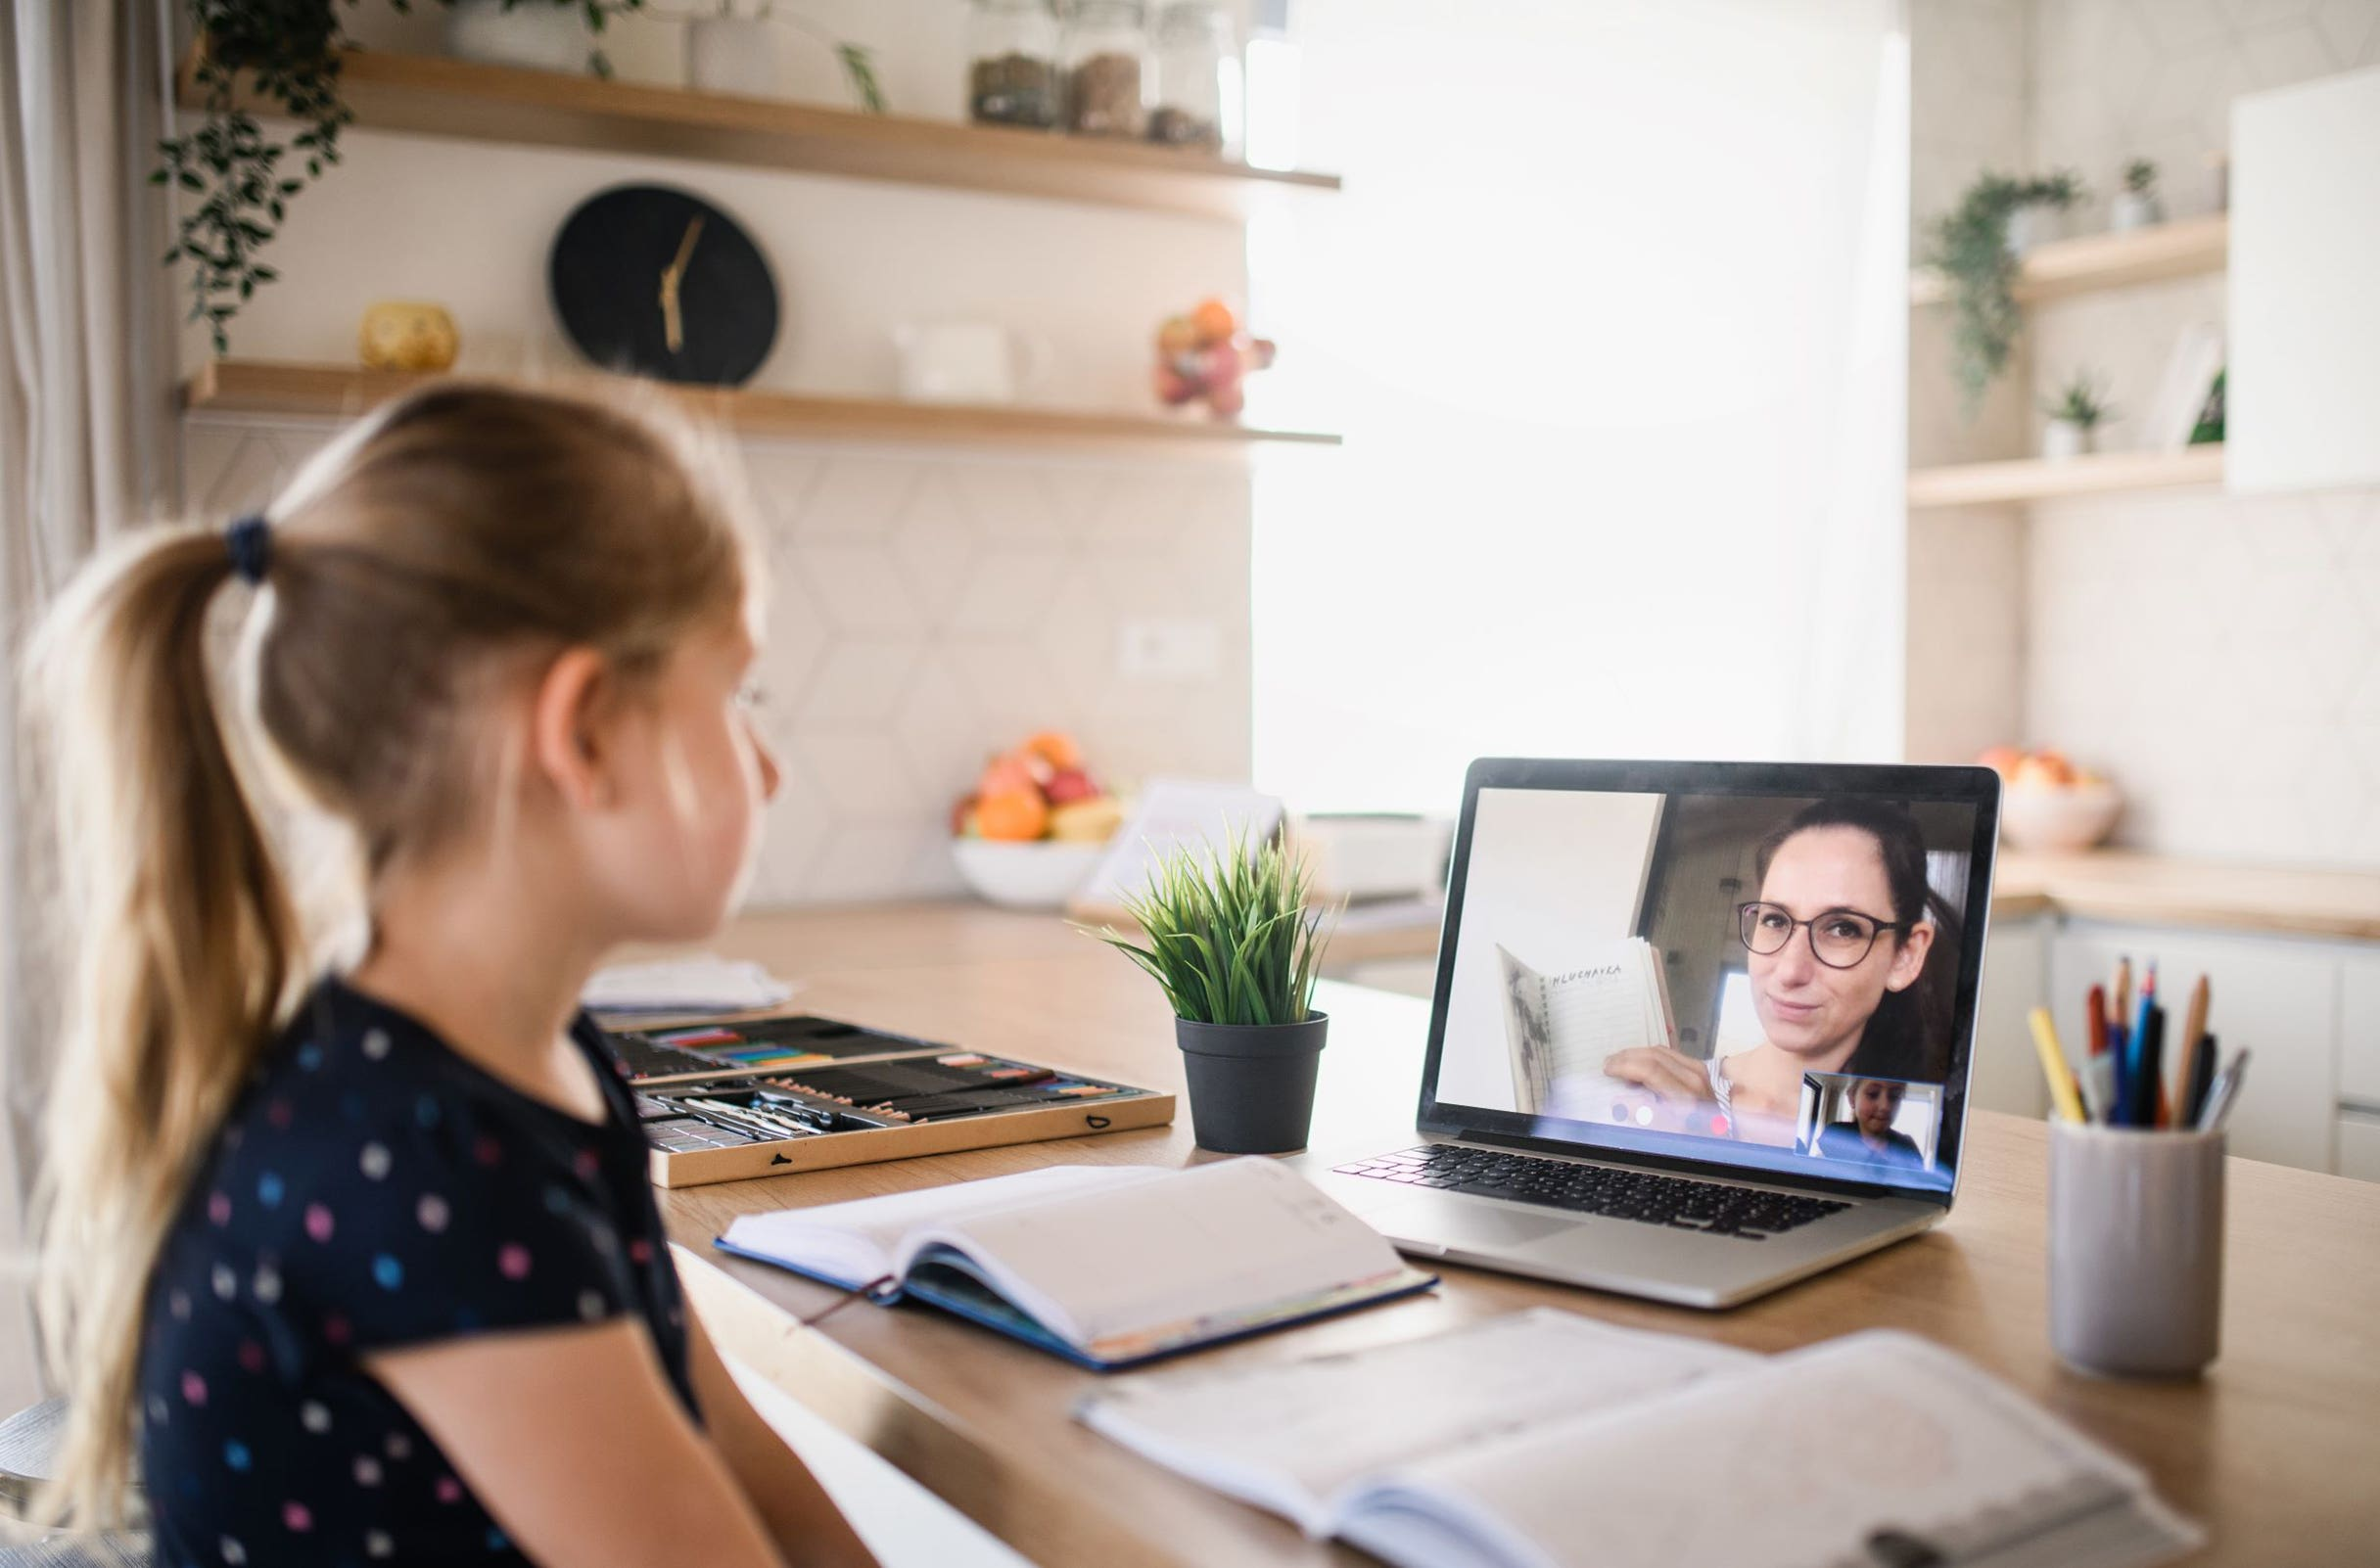 Girl remote learning watching teacher on screen